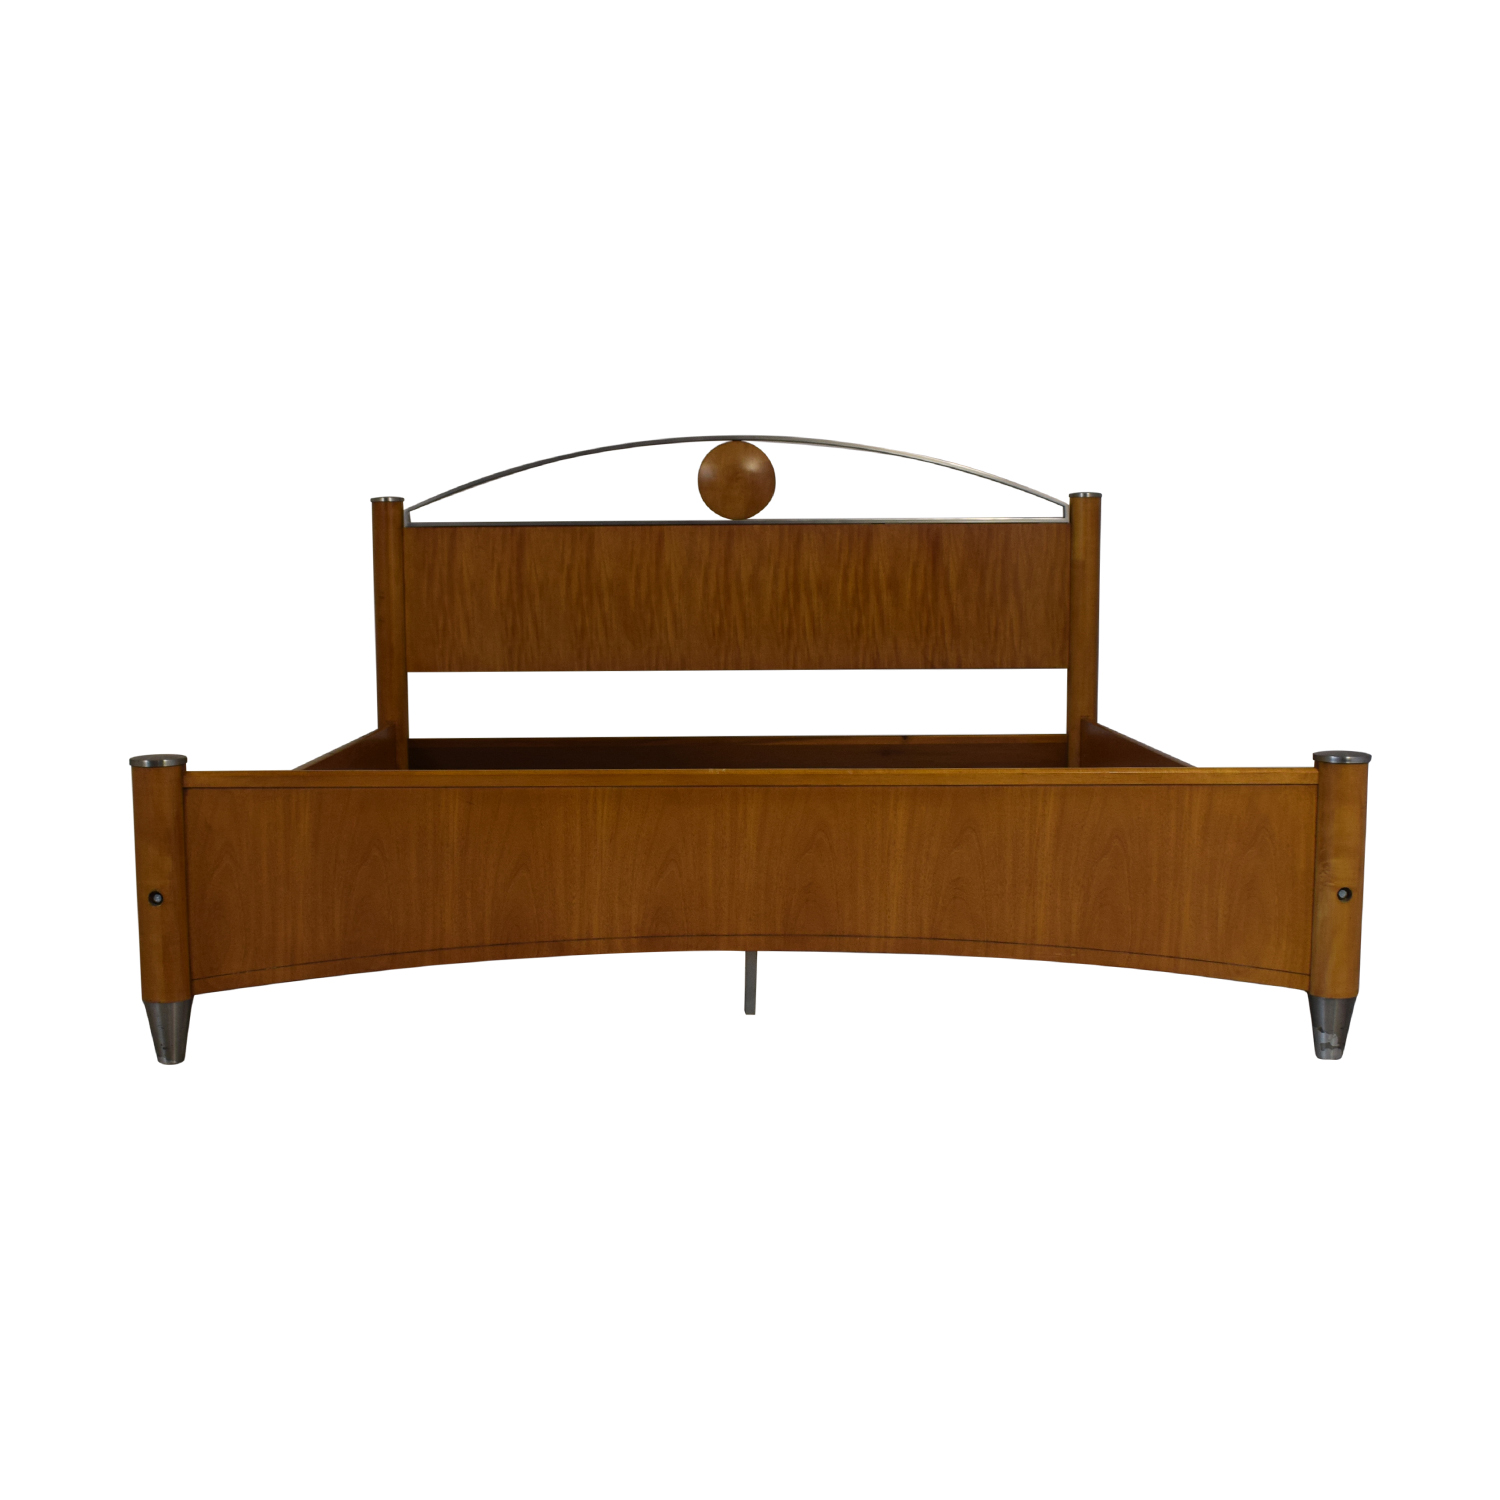 Ethan Allen Ethan Allen Radius California King Bed Frame for sale